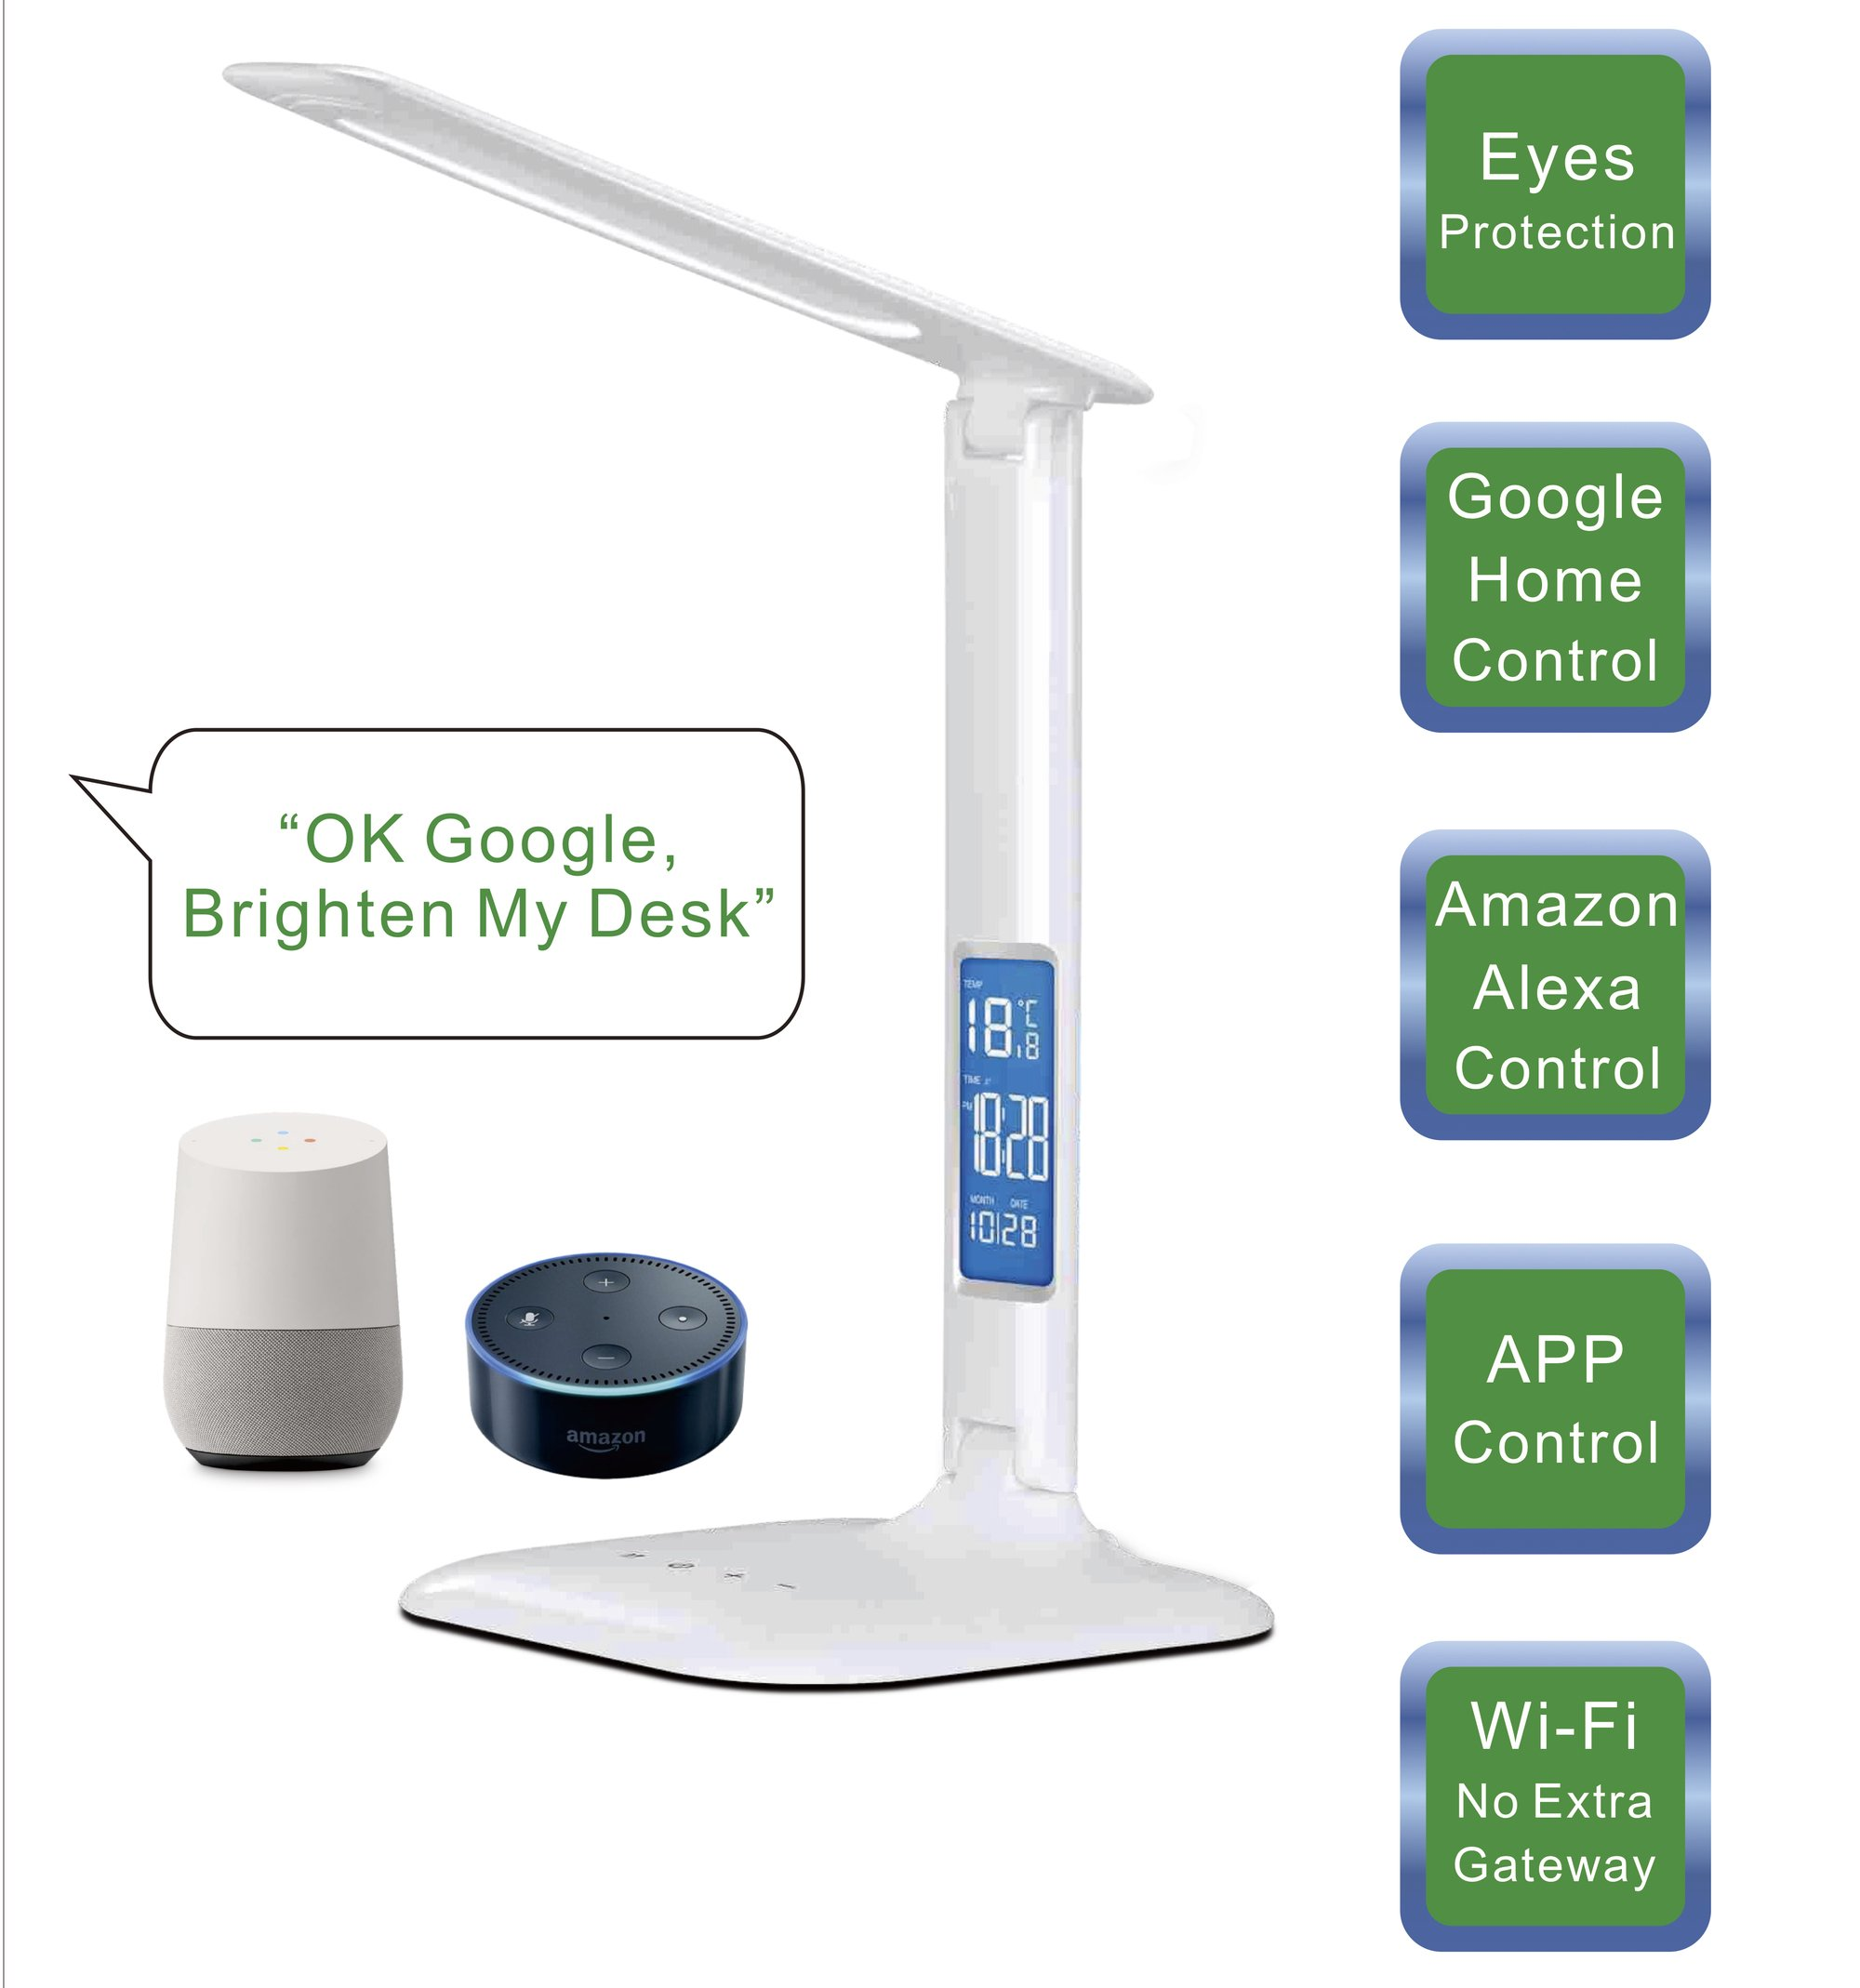 Smart WiFi Alexa Google Assistant Control LED Desk Lamp with Eye Caring Reading Light, 3 Lighting Mode, 5-Level Dimmer, Touch Control, Built-in Clock, Calendar, Thermometer by 3A Nue (Image #2)